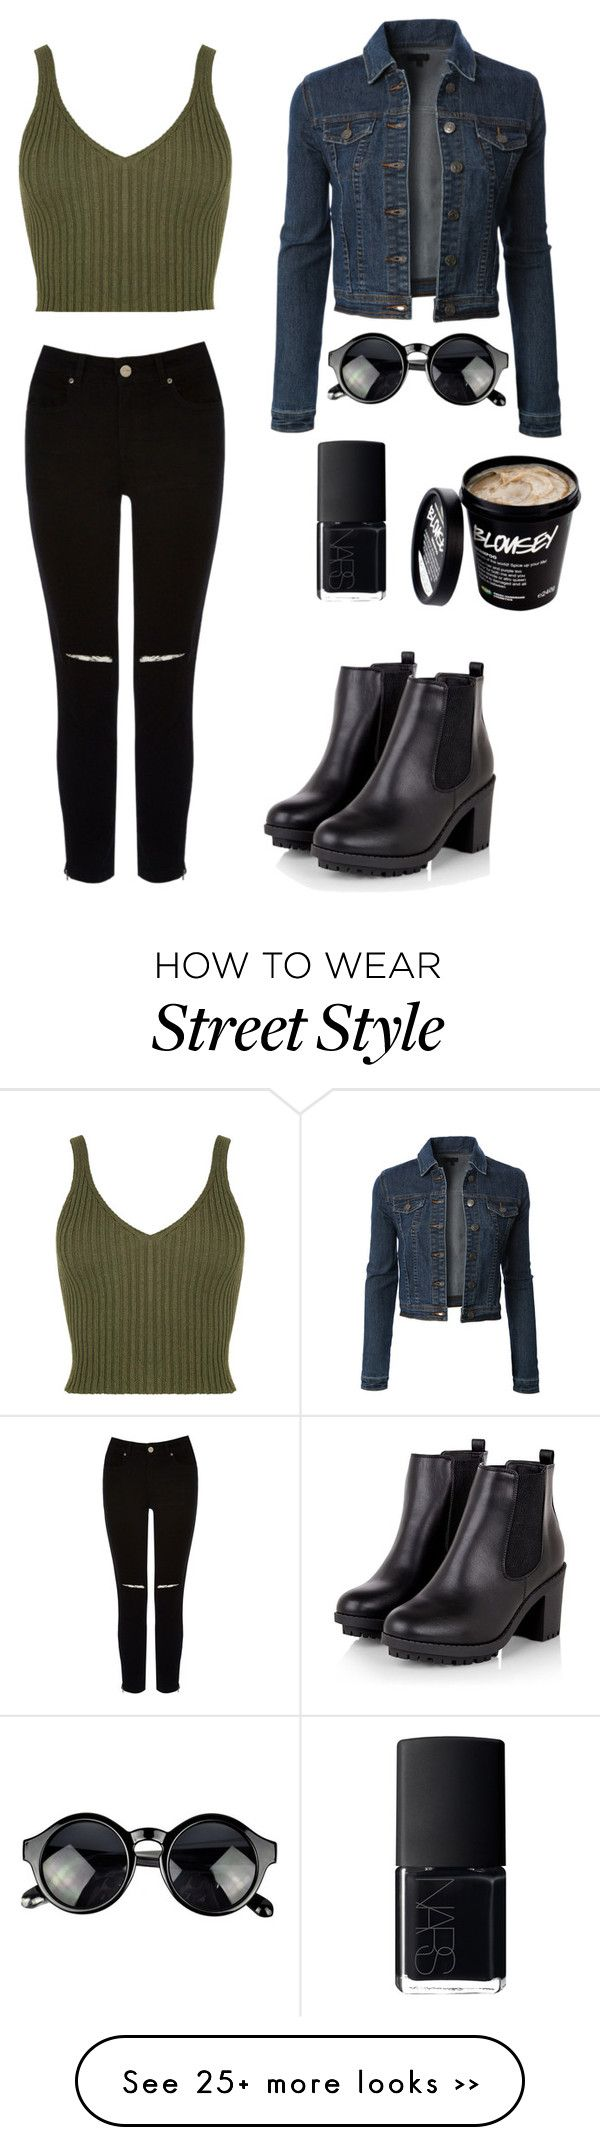 """""""Street style"""" by soburns00 on Polyvore featuring Oasis, NARS Cosmetics and LE3NO"""